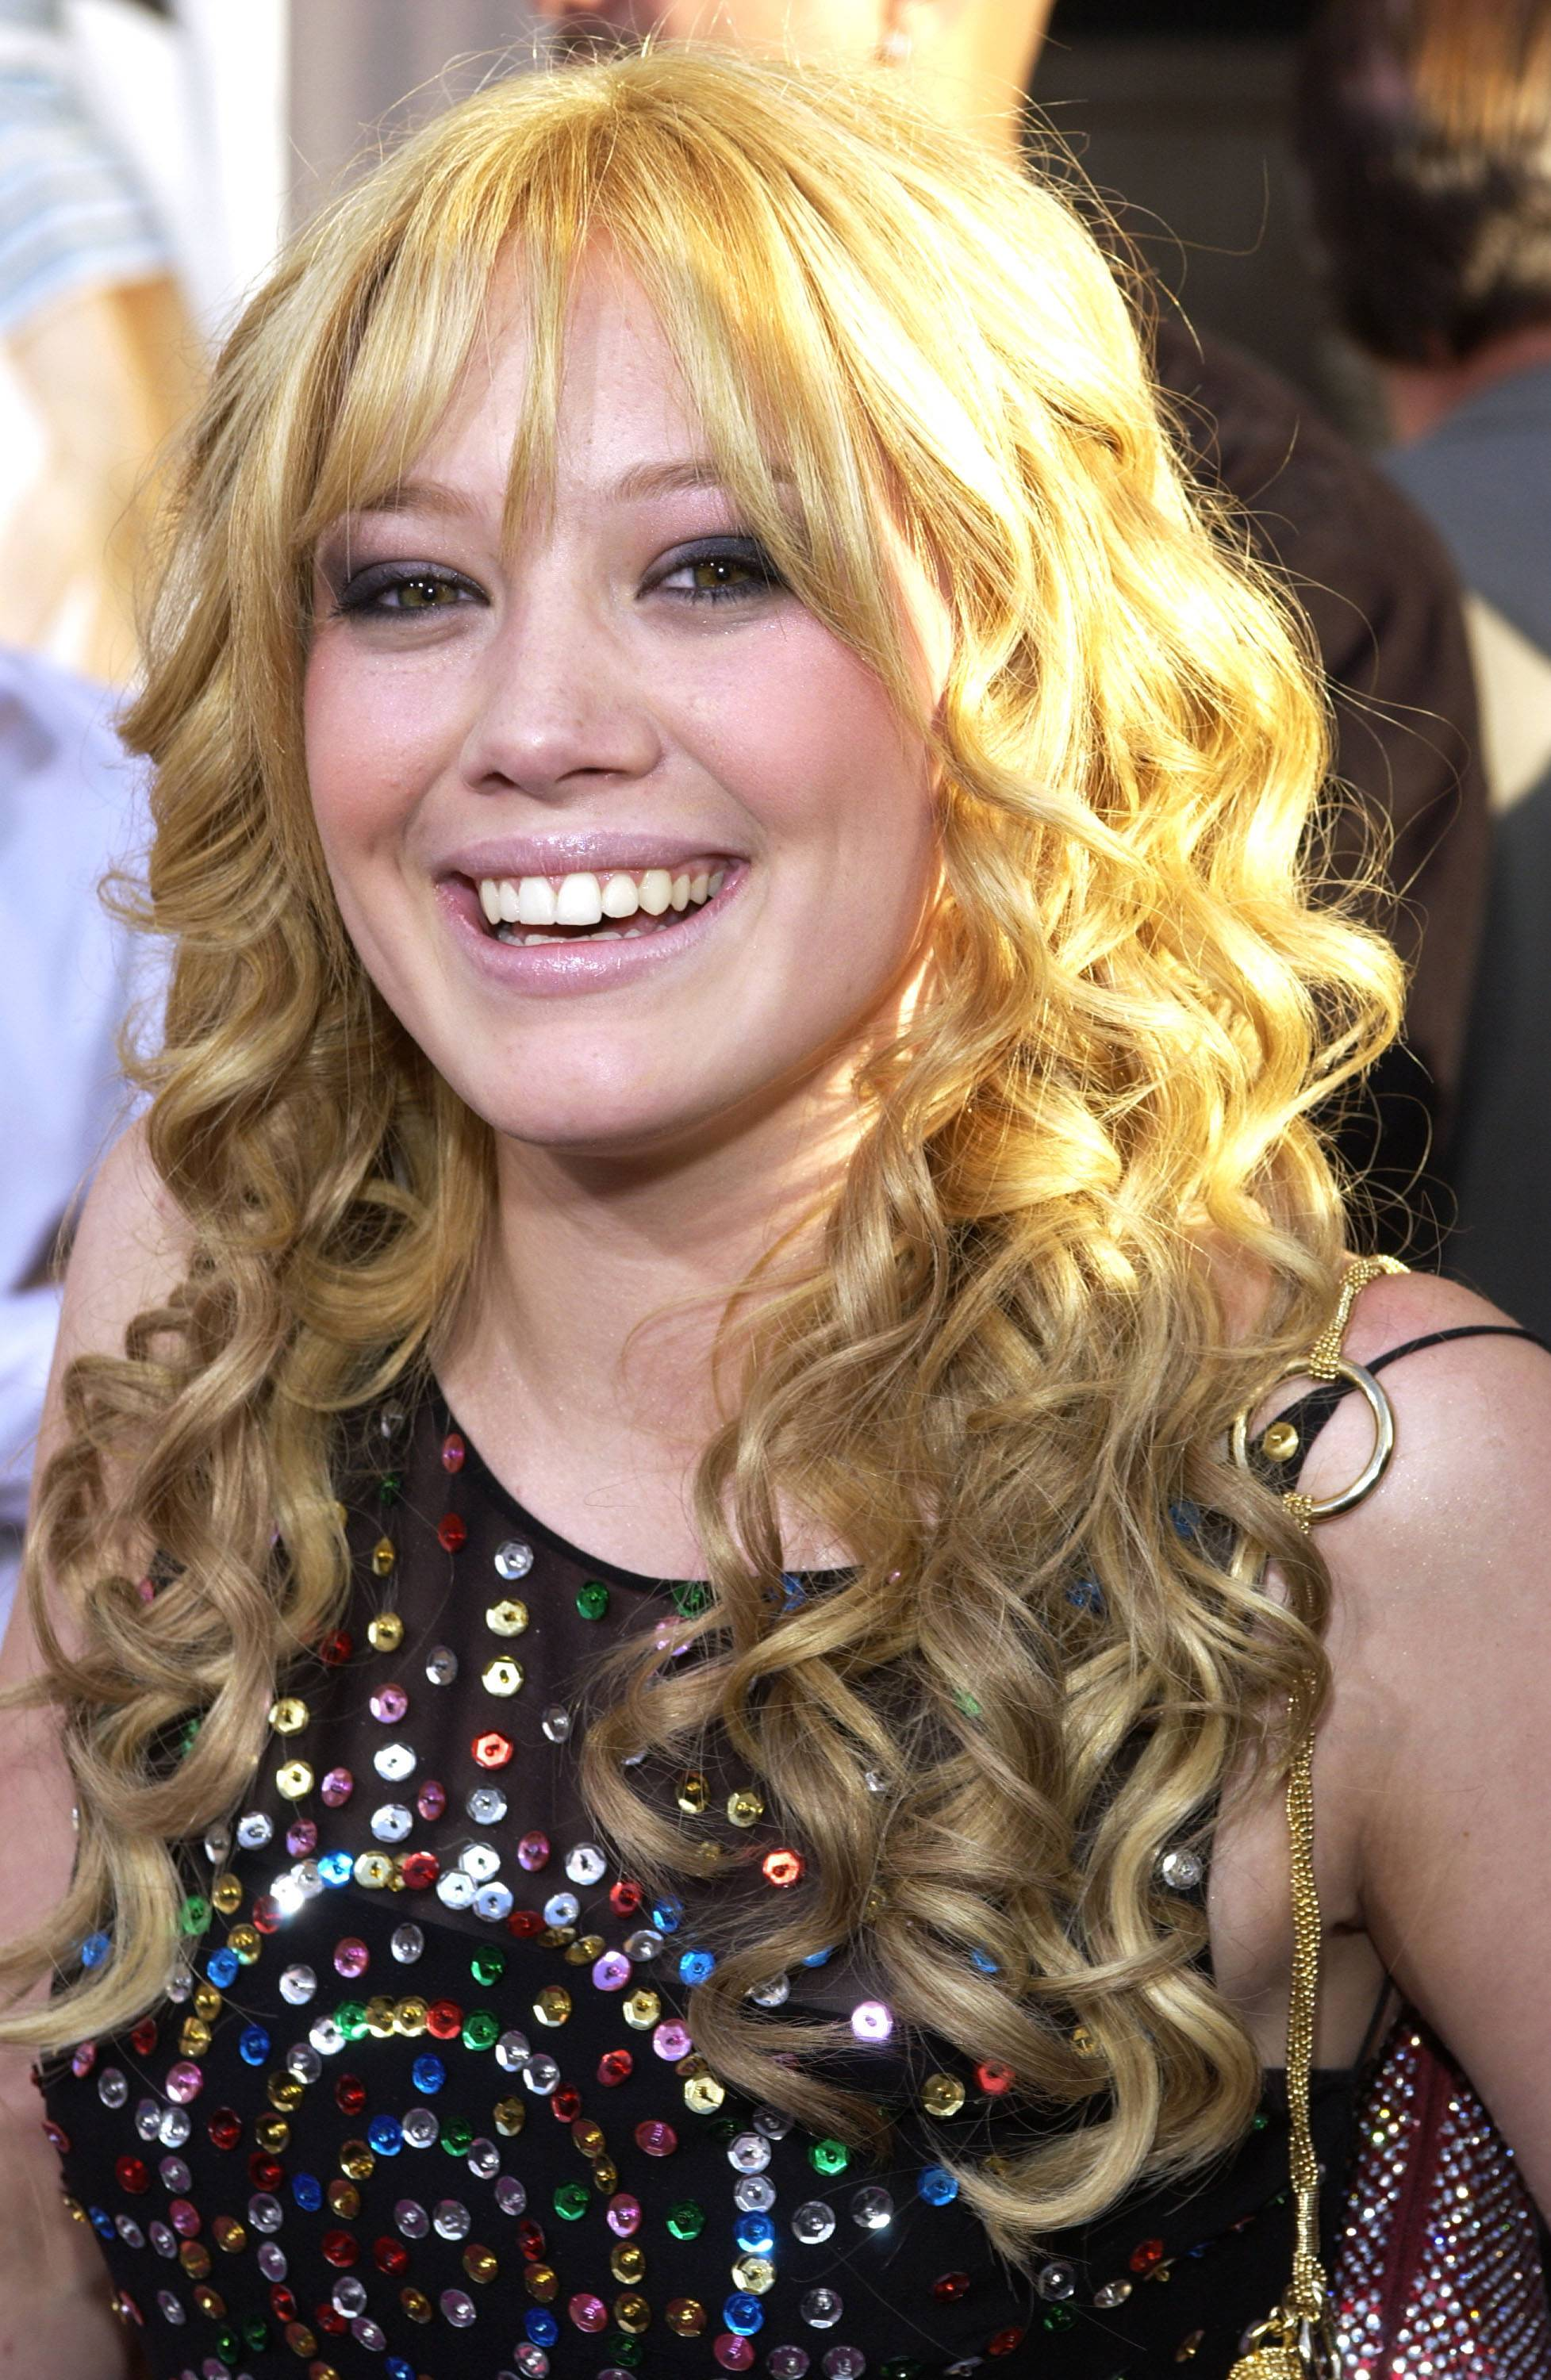 Hilary Duff as Lizzie McGuire in Lizzie McGuire - (Photo: L. Cohen/WireImage via Getty Images)